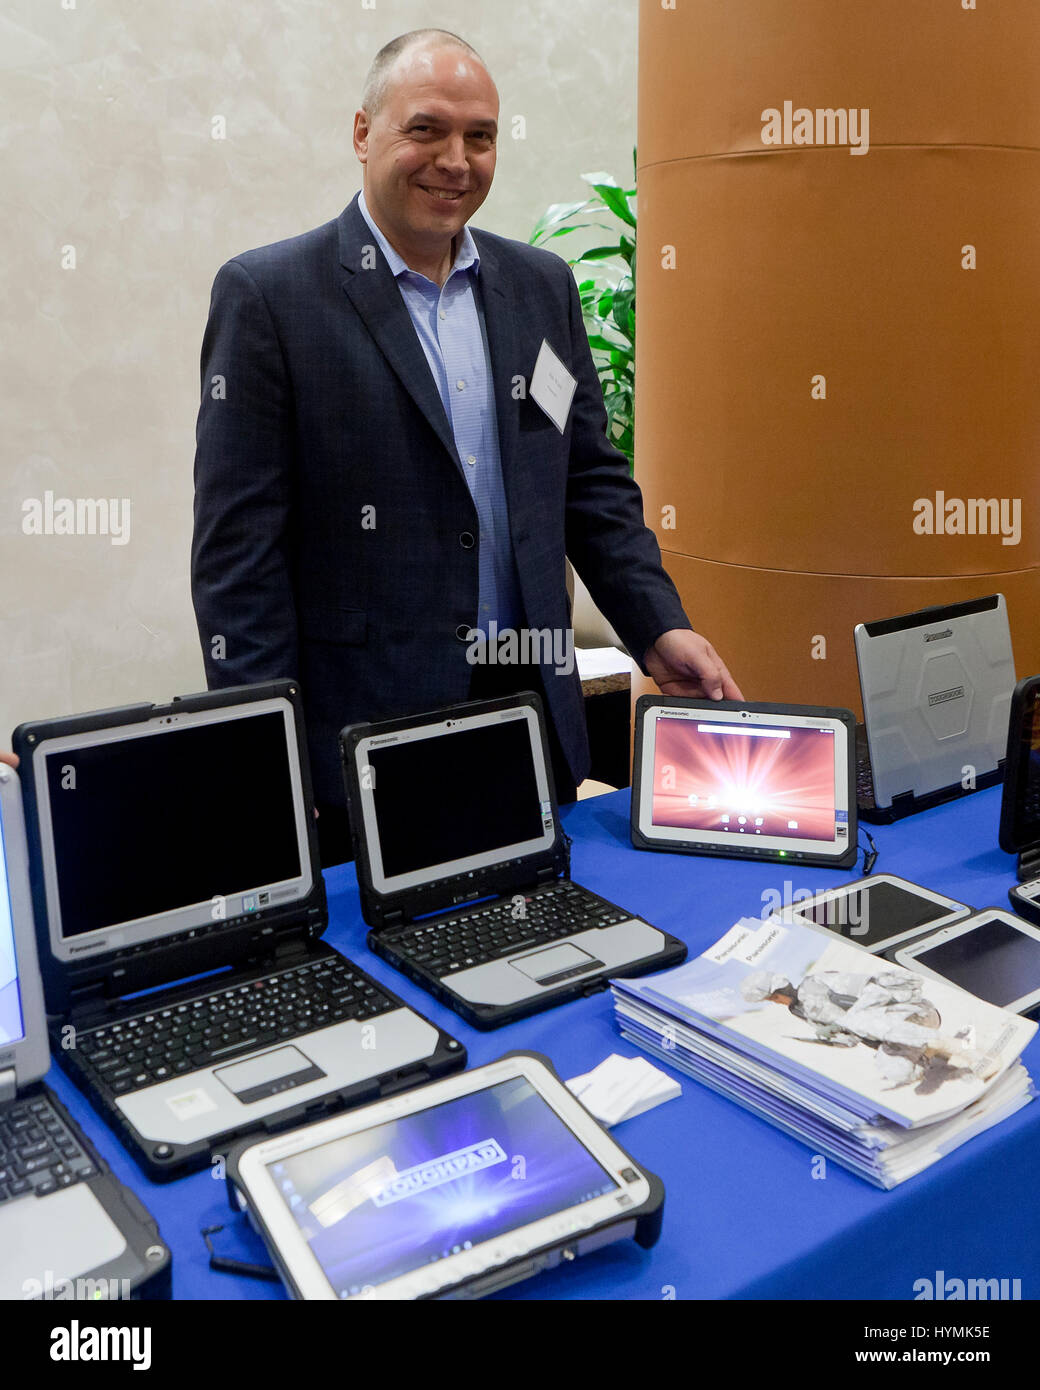 Man showing Panasonic rugged computer line - USA - Stock Image